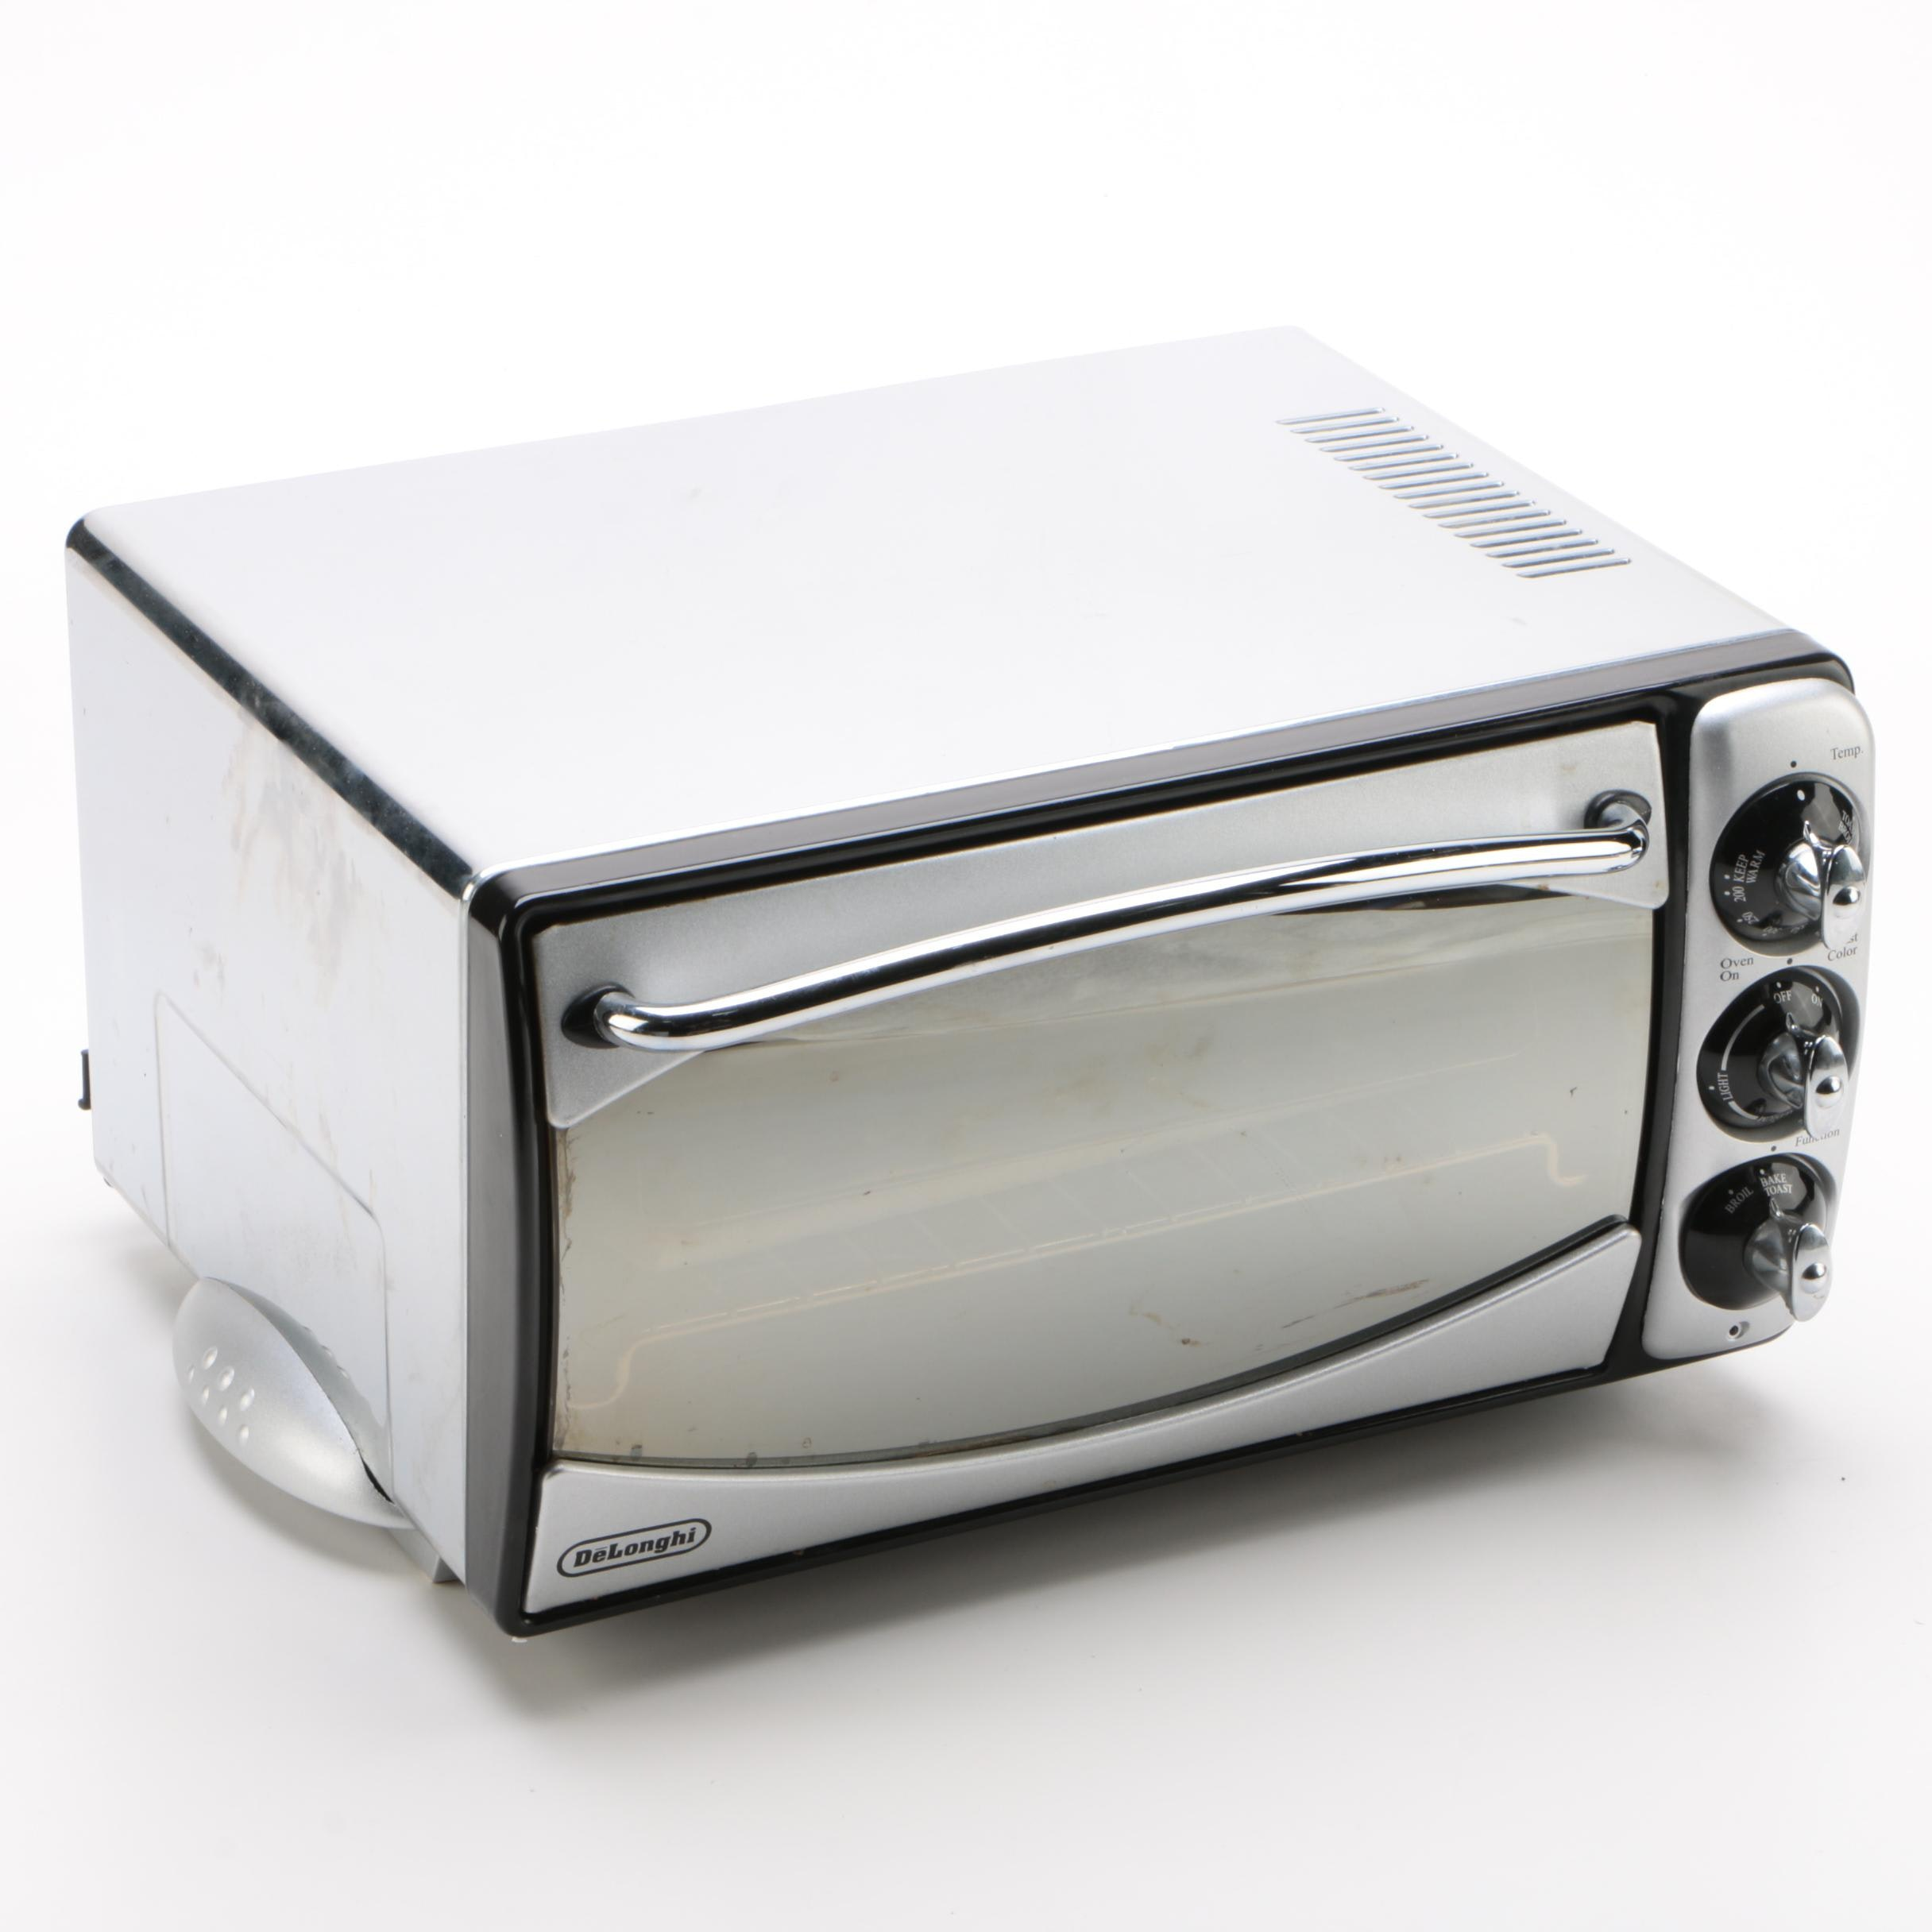 DeLonghi XR640 Convection Toaster Oven with Broiler